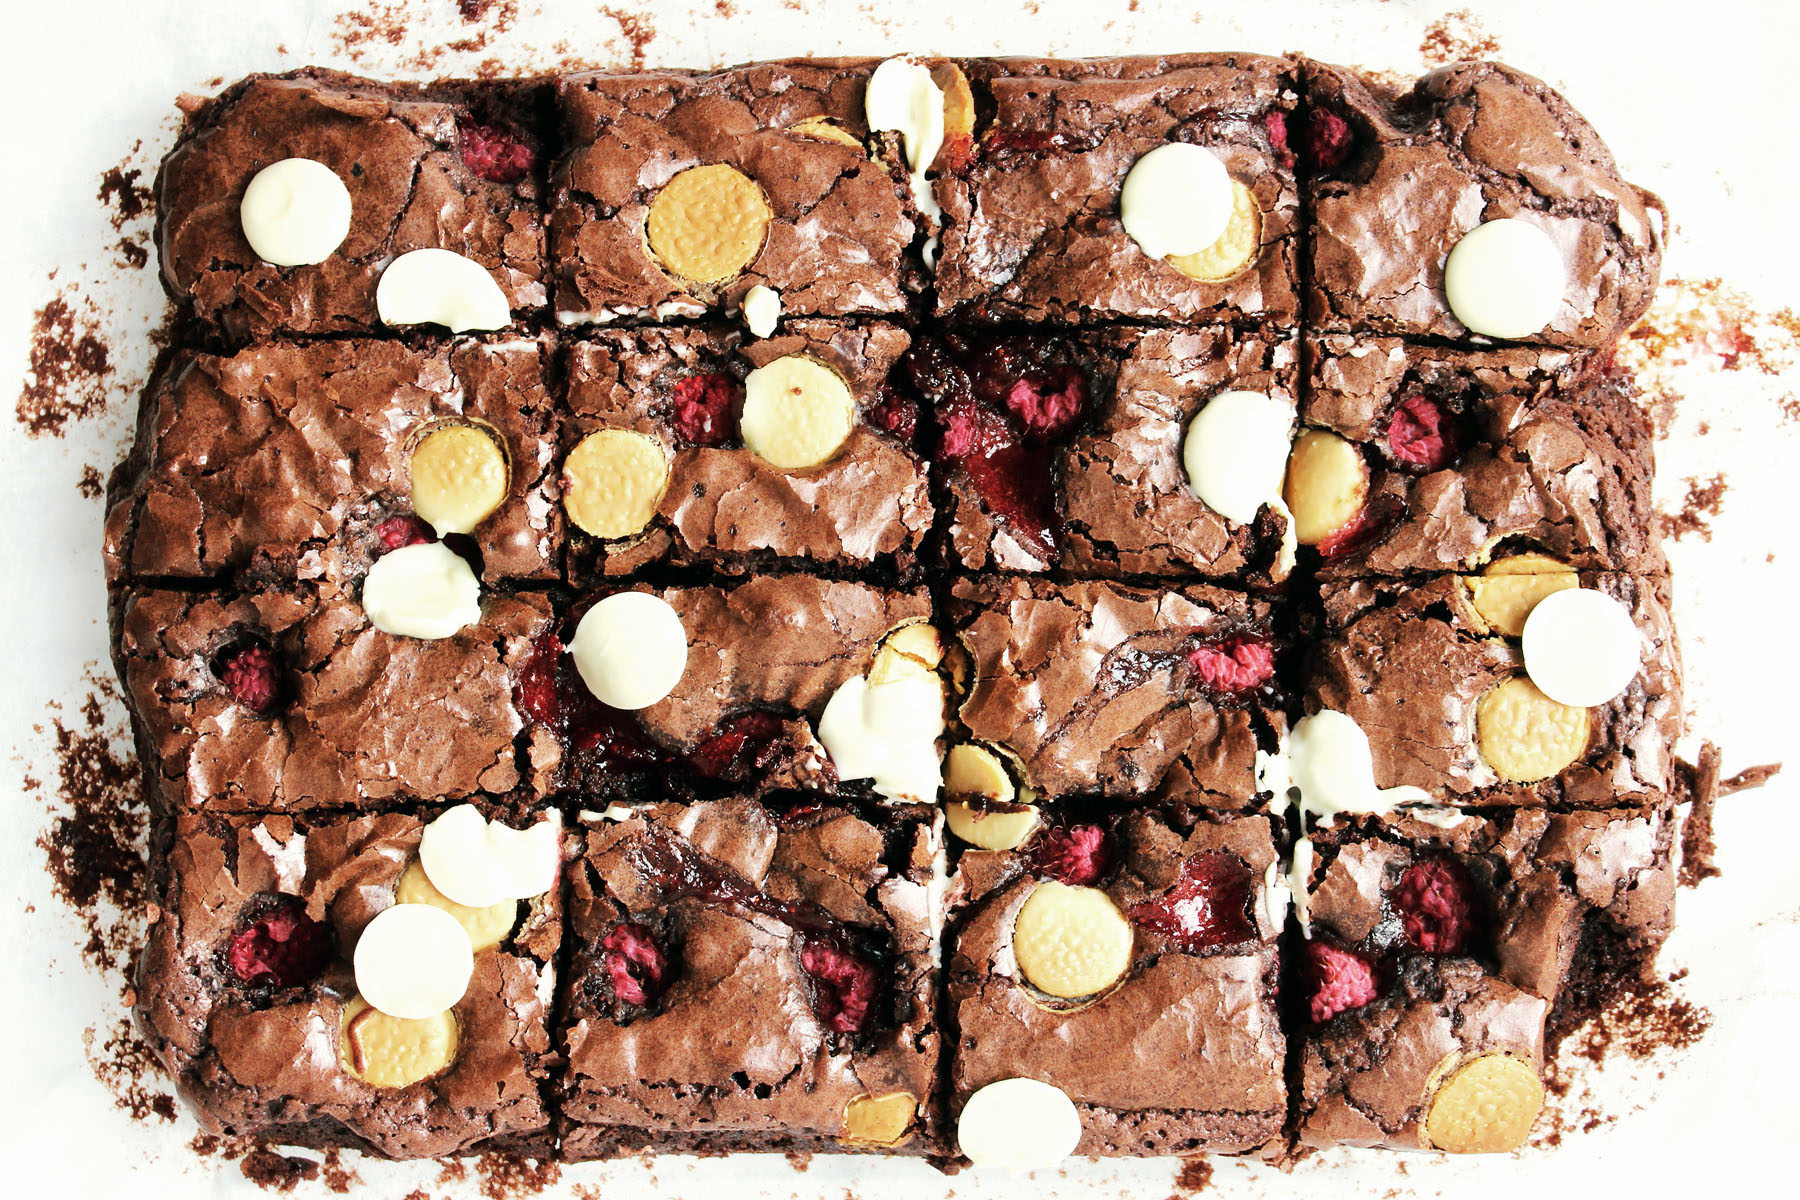 Raspberry and White Chocolate Brownies